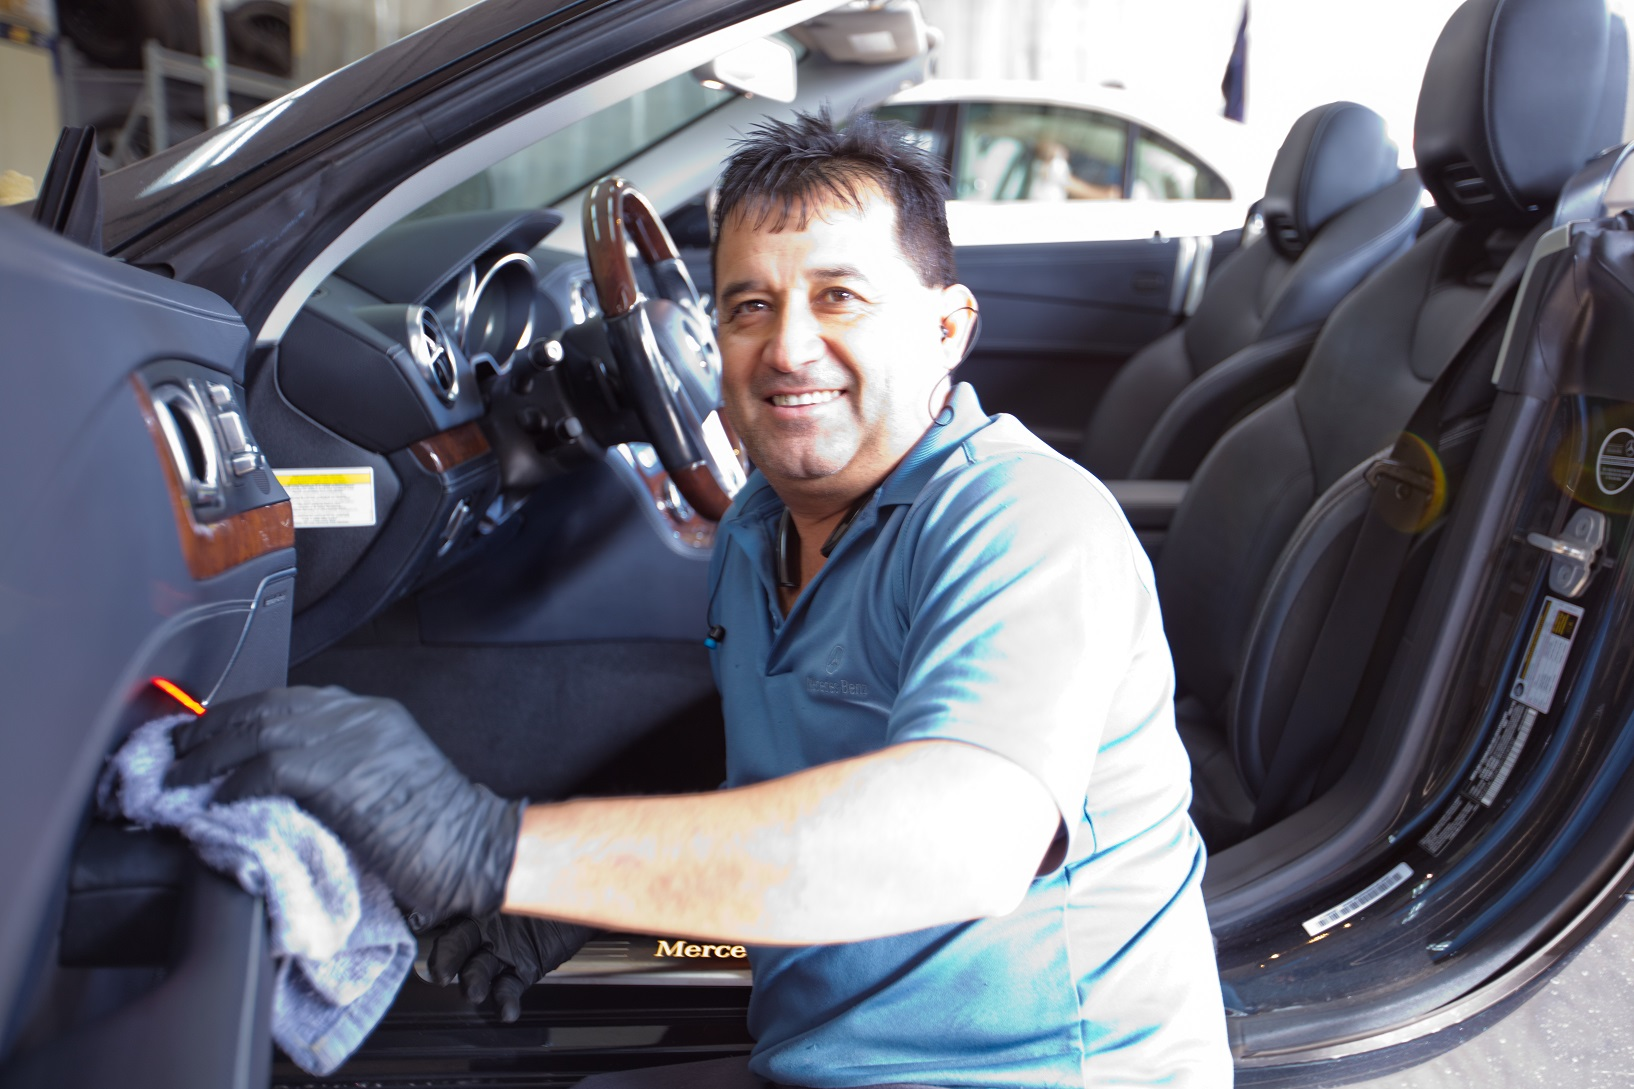 Keep your vehicle looking brand new with a detail every now and again. Our team will have the interior and/or exterior shining when you come to pick it up!